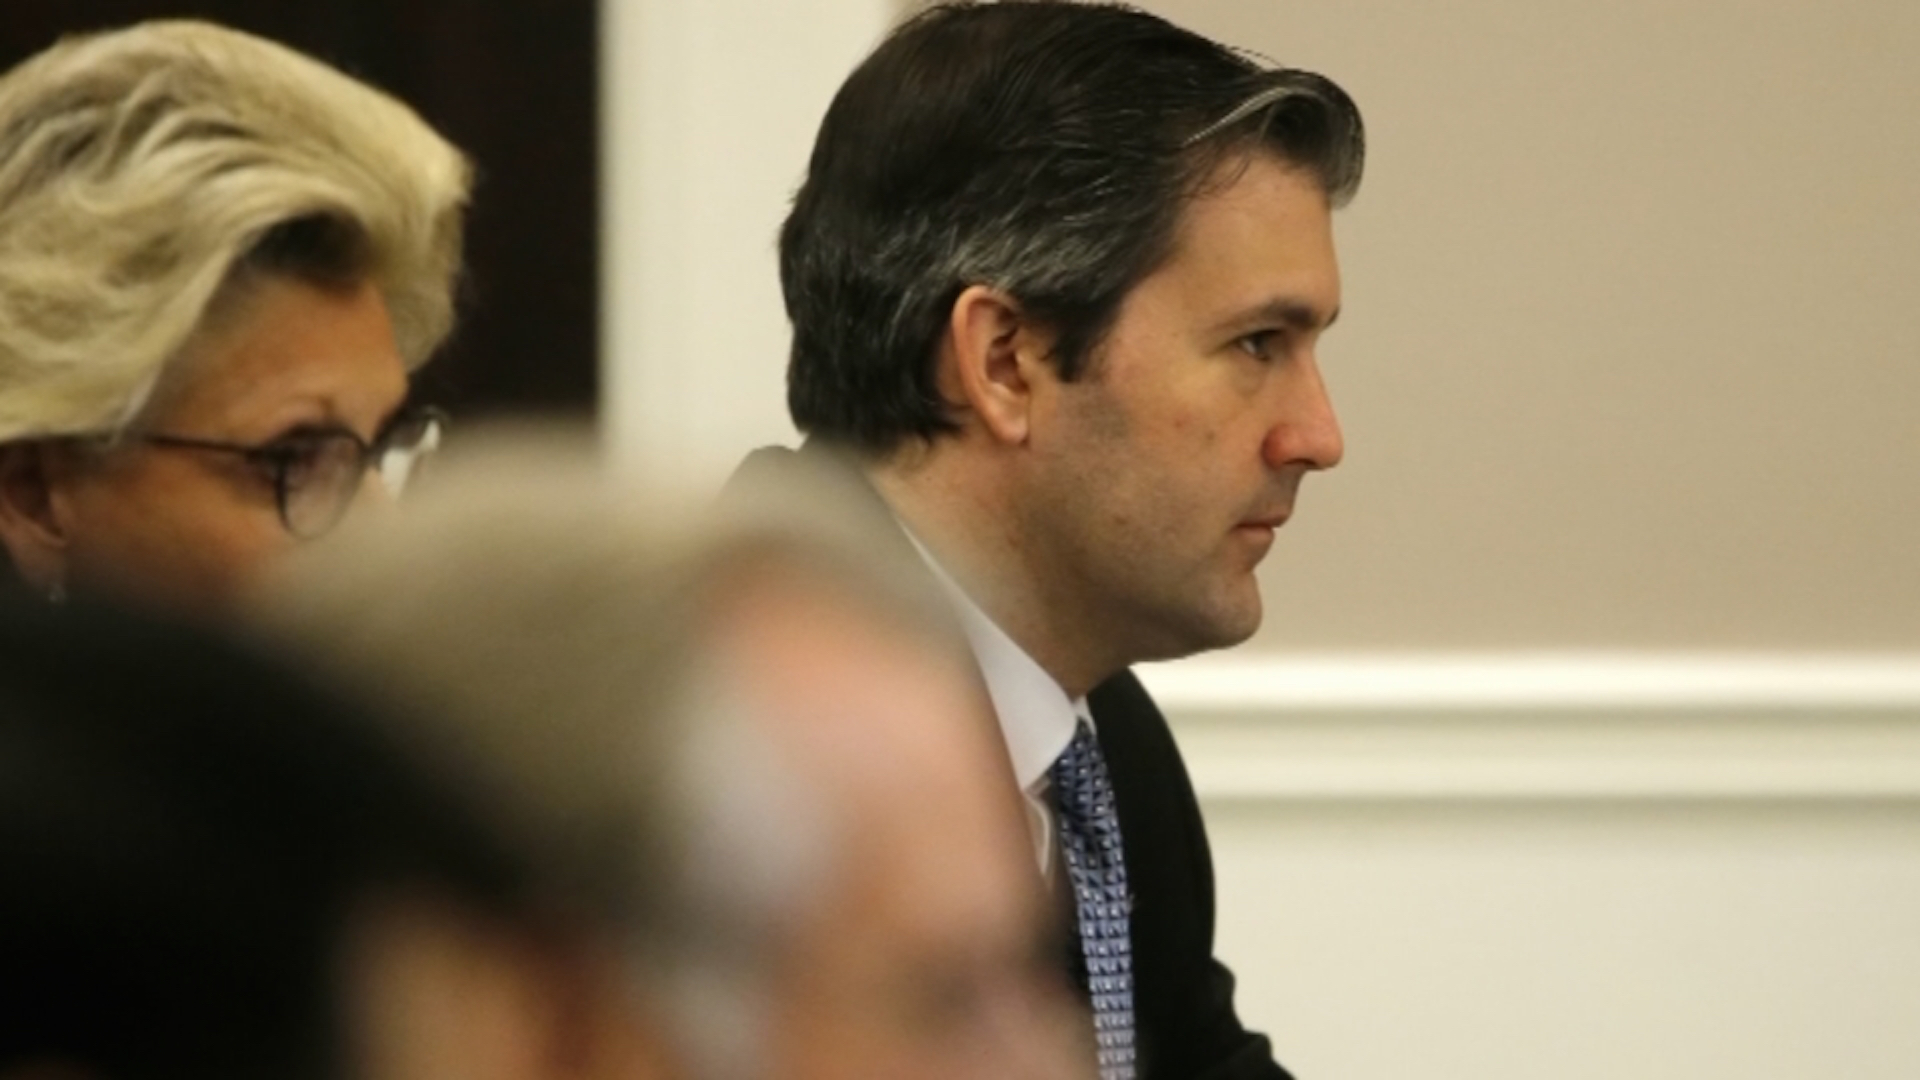 Mistrial declared in case of South Carolina officer who shot Walter Scott after traffic stop